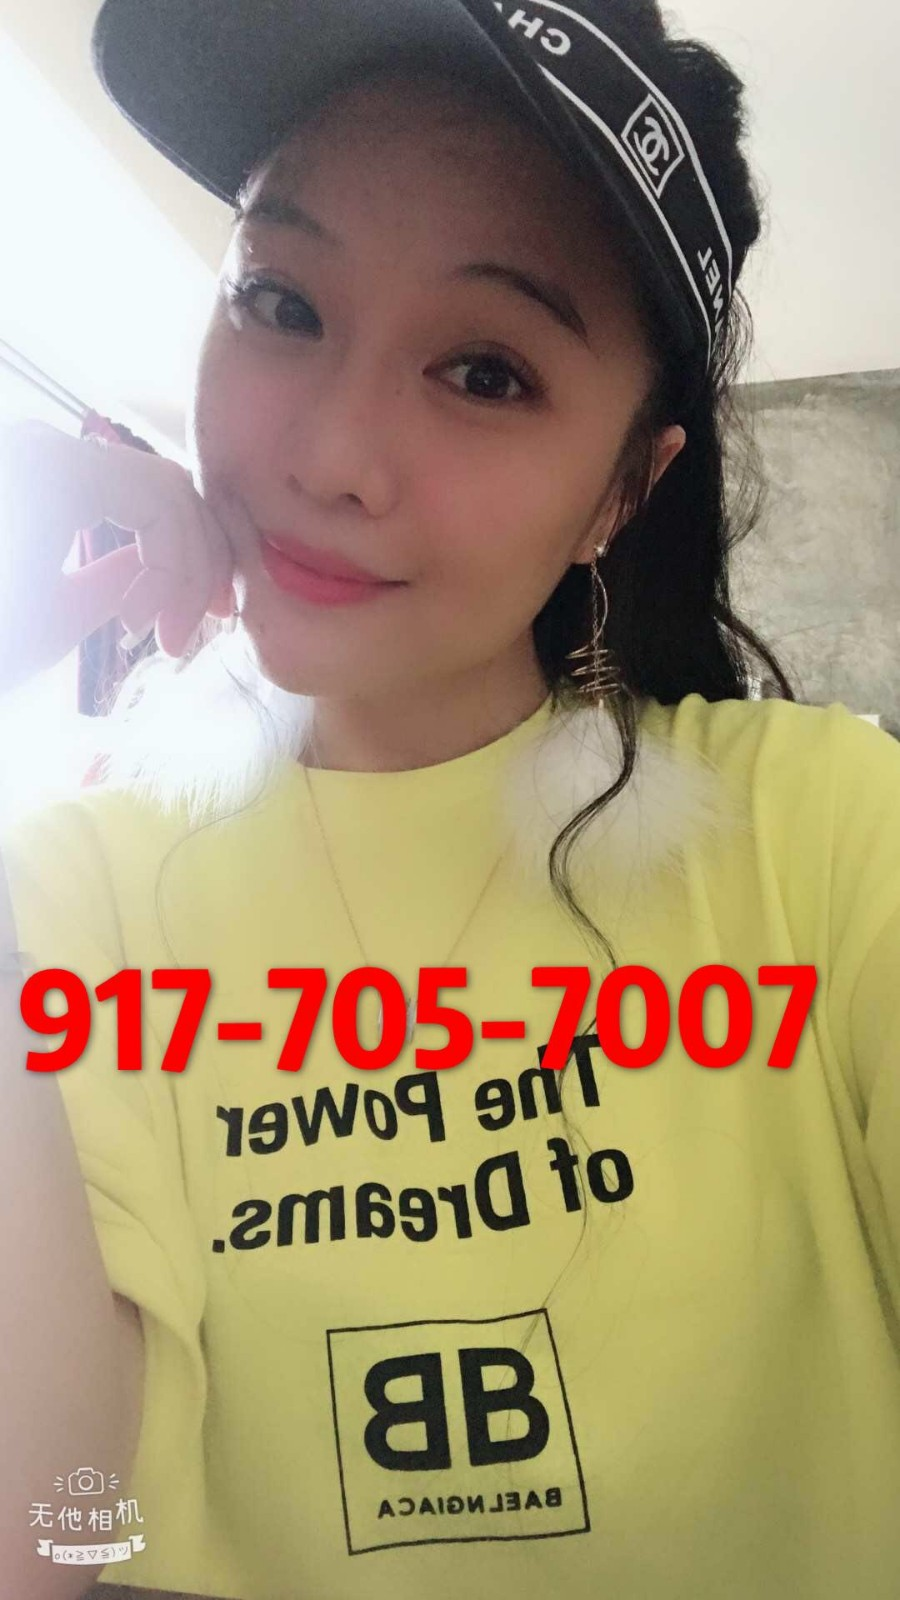 917-905-7007🔵🌕🔵🌕▃▃▃▃▃▃▃sexy Asian▃▃▃▃▃shower together🔵🌕🔵🌕▃▃▃▃▃▃▃🔵🌕